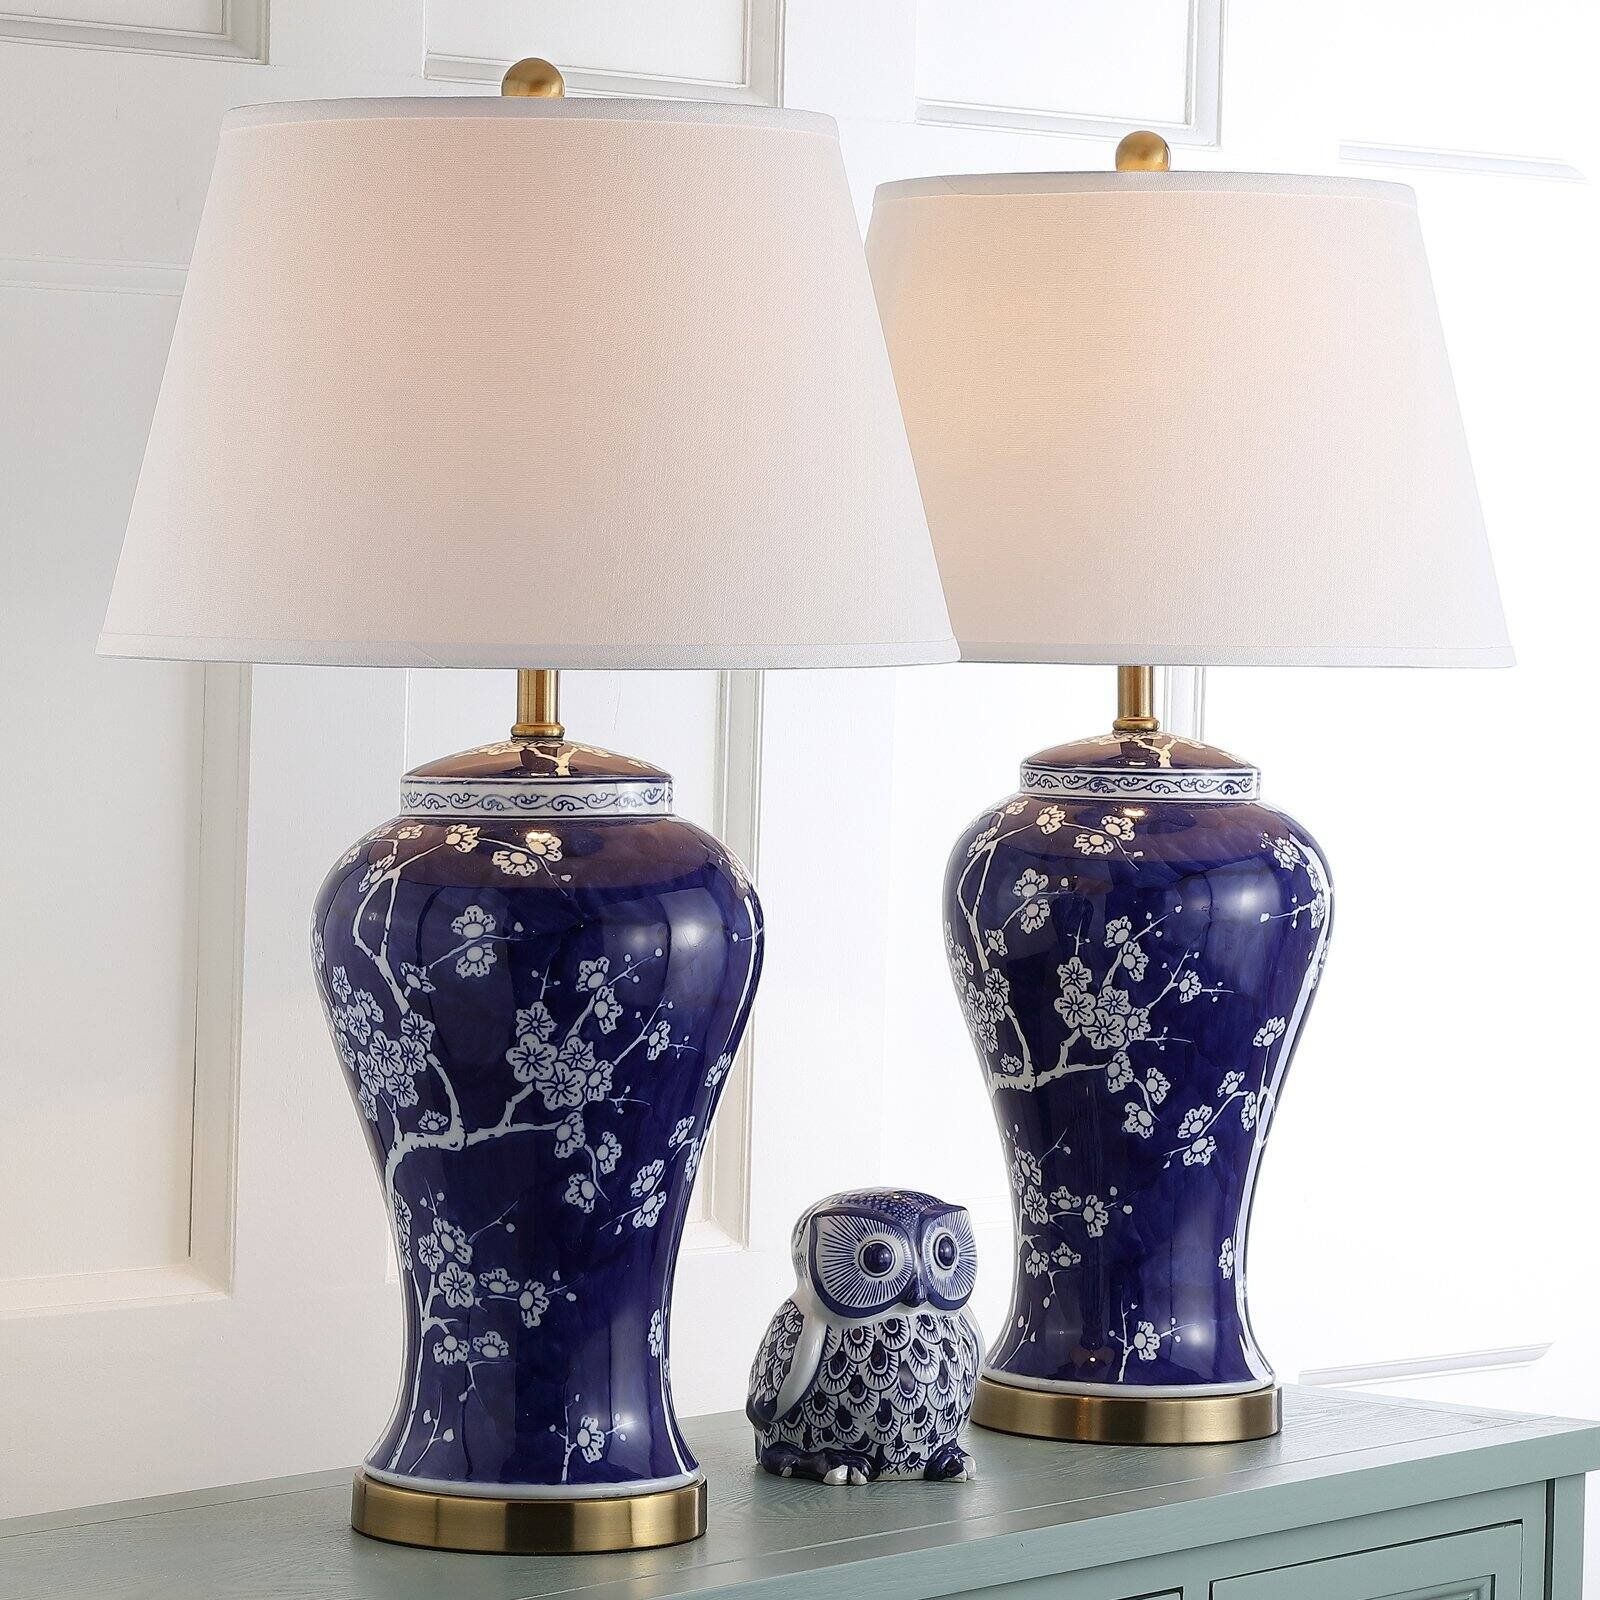 Safavieh Spring 29 Inch H Blossom Table Lamp Set Of 2 Color Navy Blue Finish Gold Quantity Set Of 2 Walmart Com Lamp Sets Table Lamp Sets Lamp